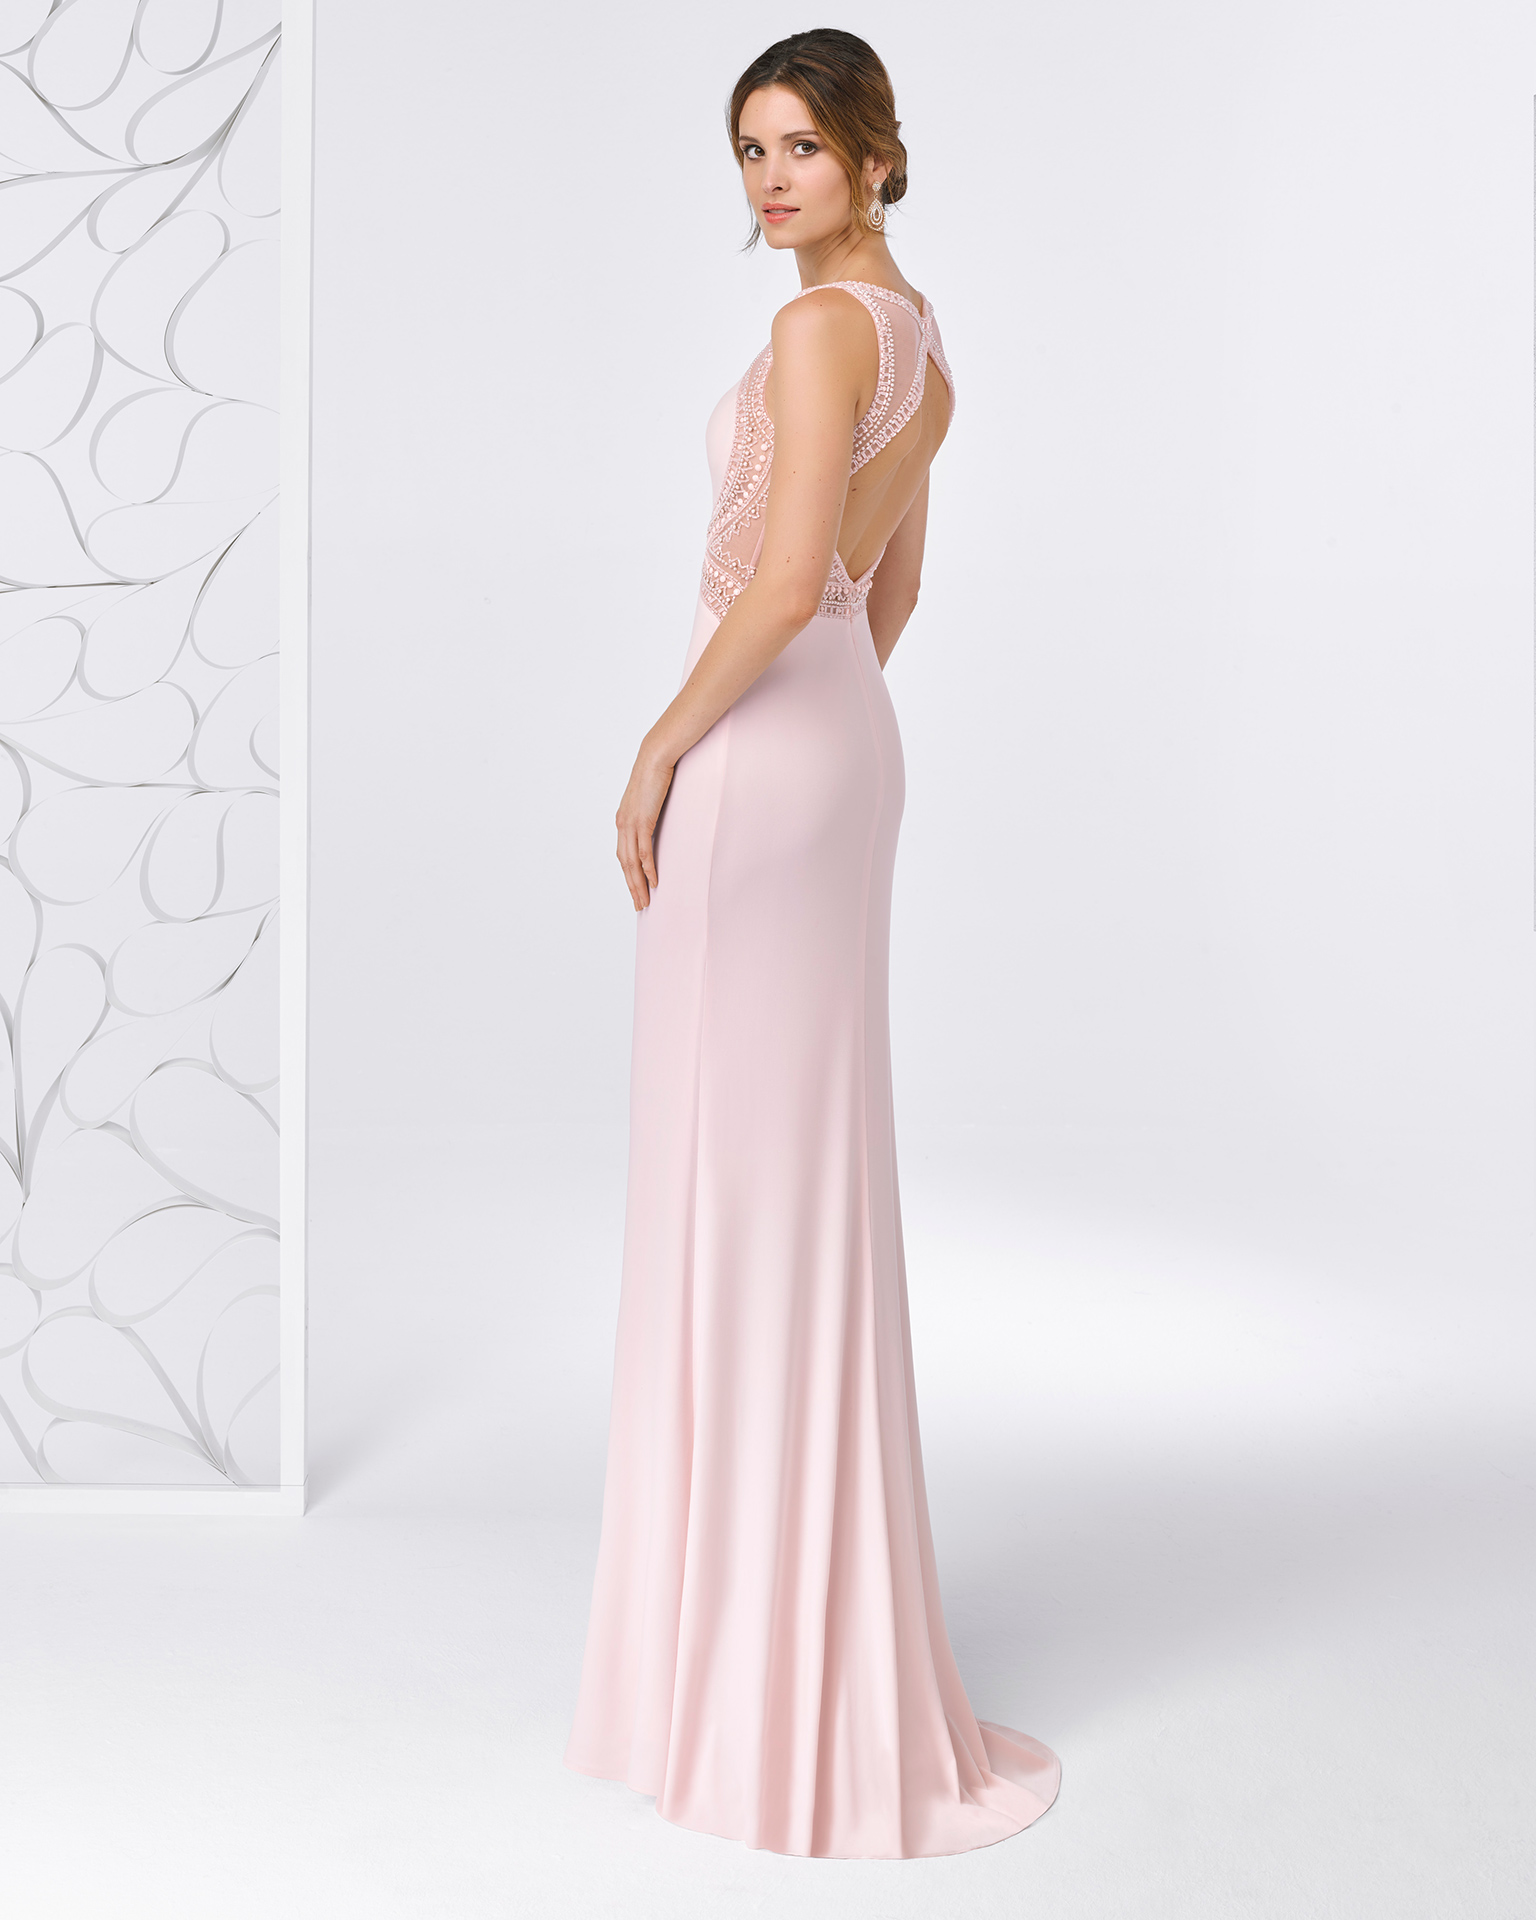 Long beaded crepe cocktail dress with open beaded back. Available in pink, cobalt, red and aquamarine. 2018 FIESTA AIRE BARCELONA Collection.